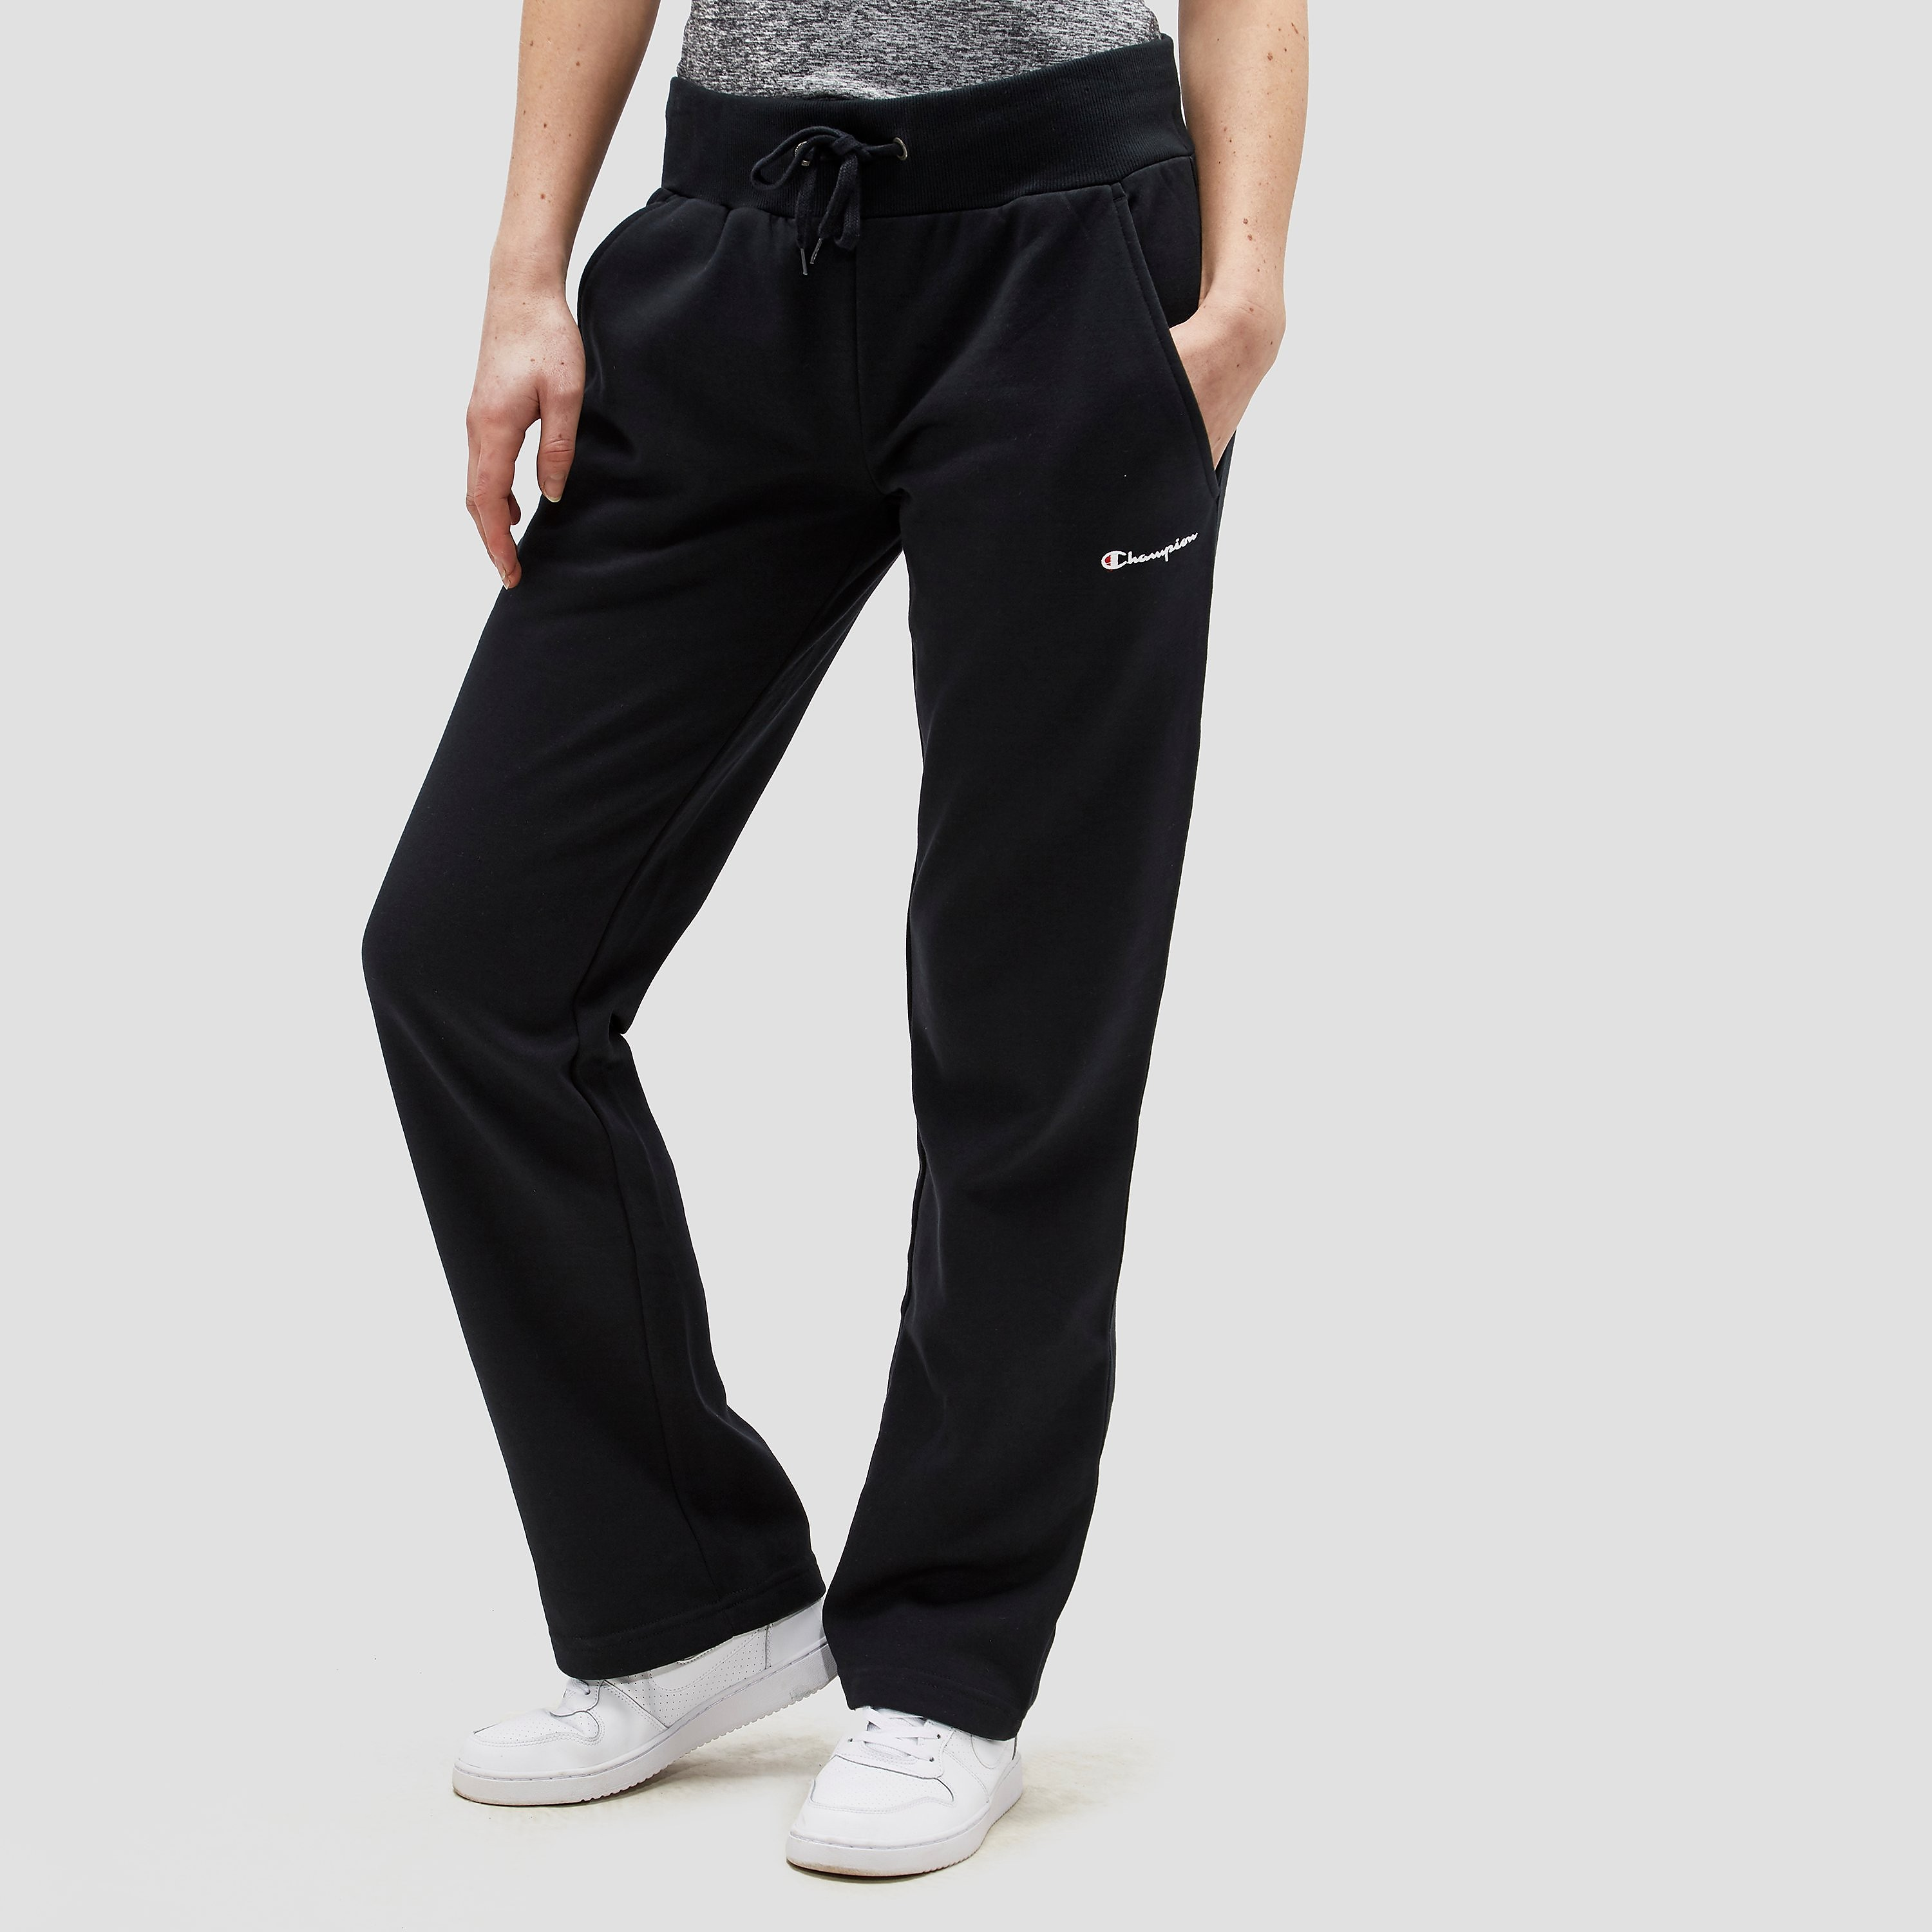 CHAMPION BLISSE JOGGINGBROEK